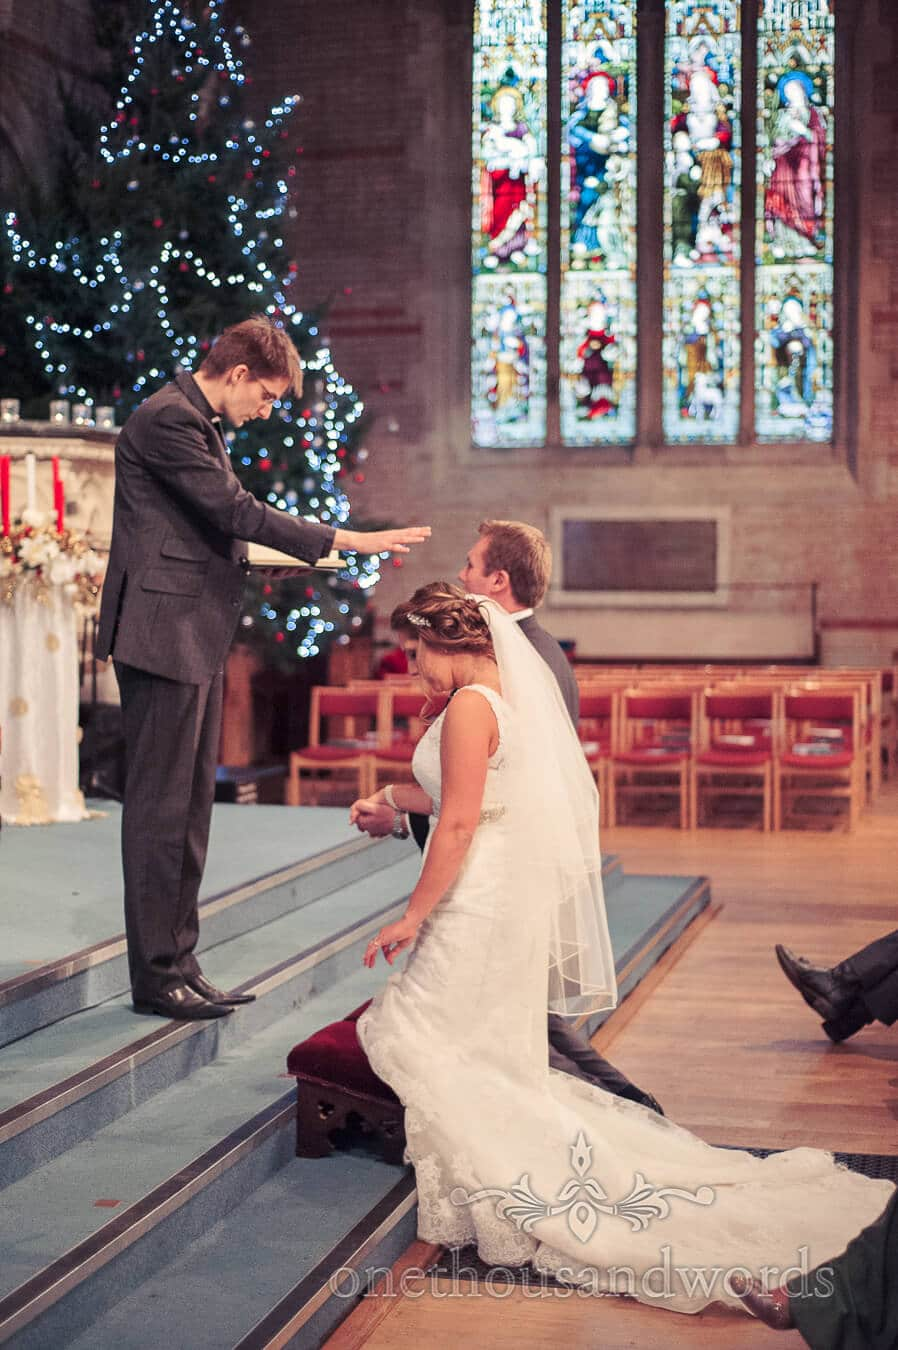 Wedding blessings in church at Christmas time